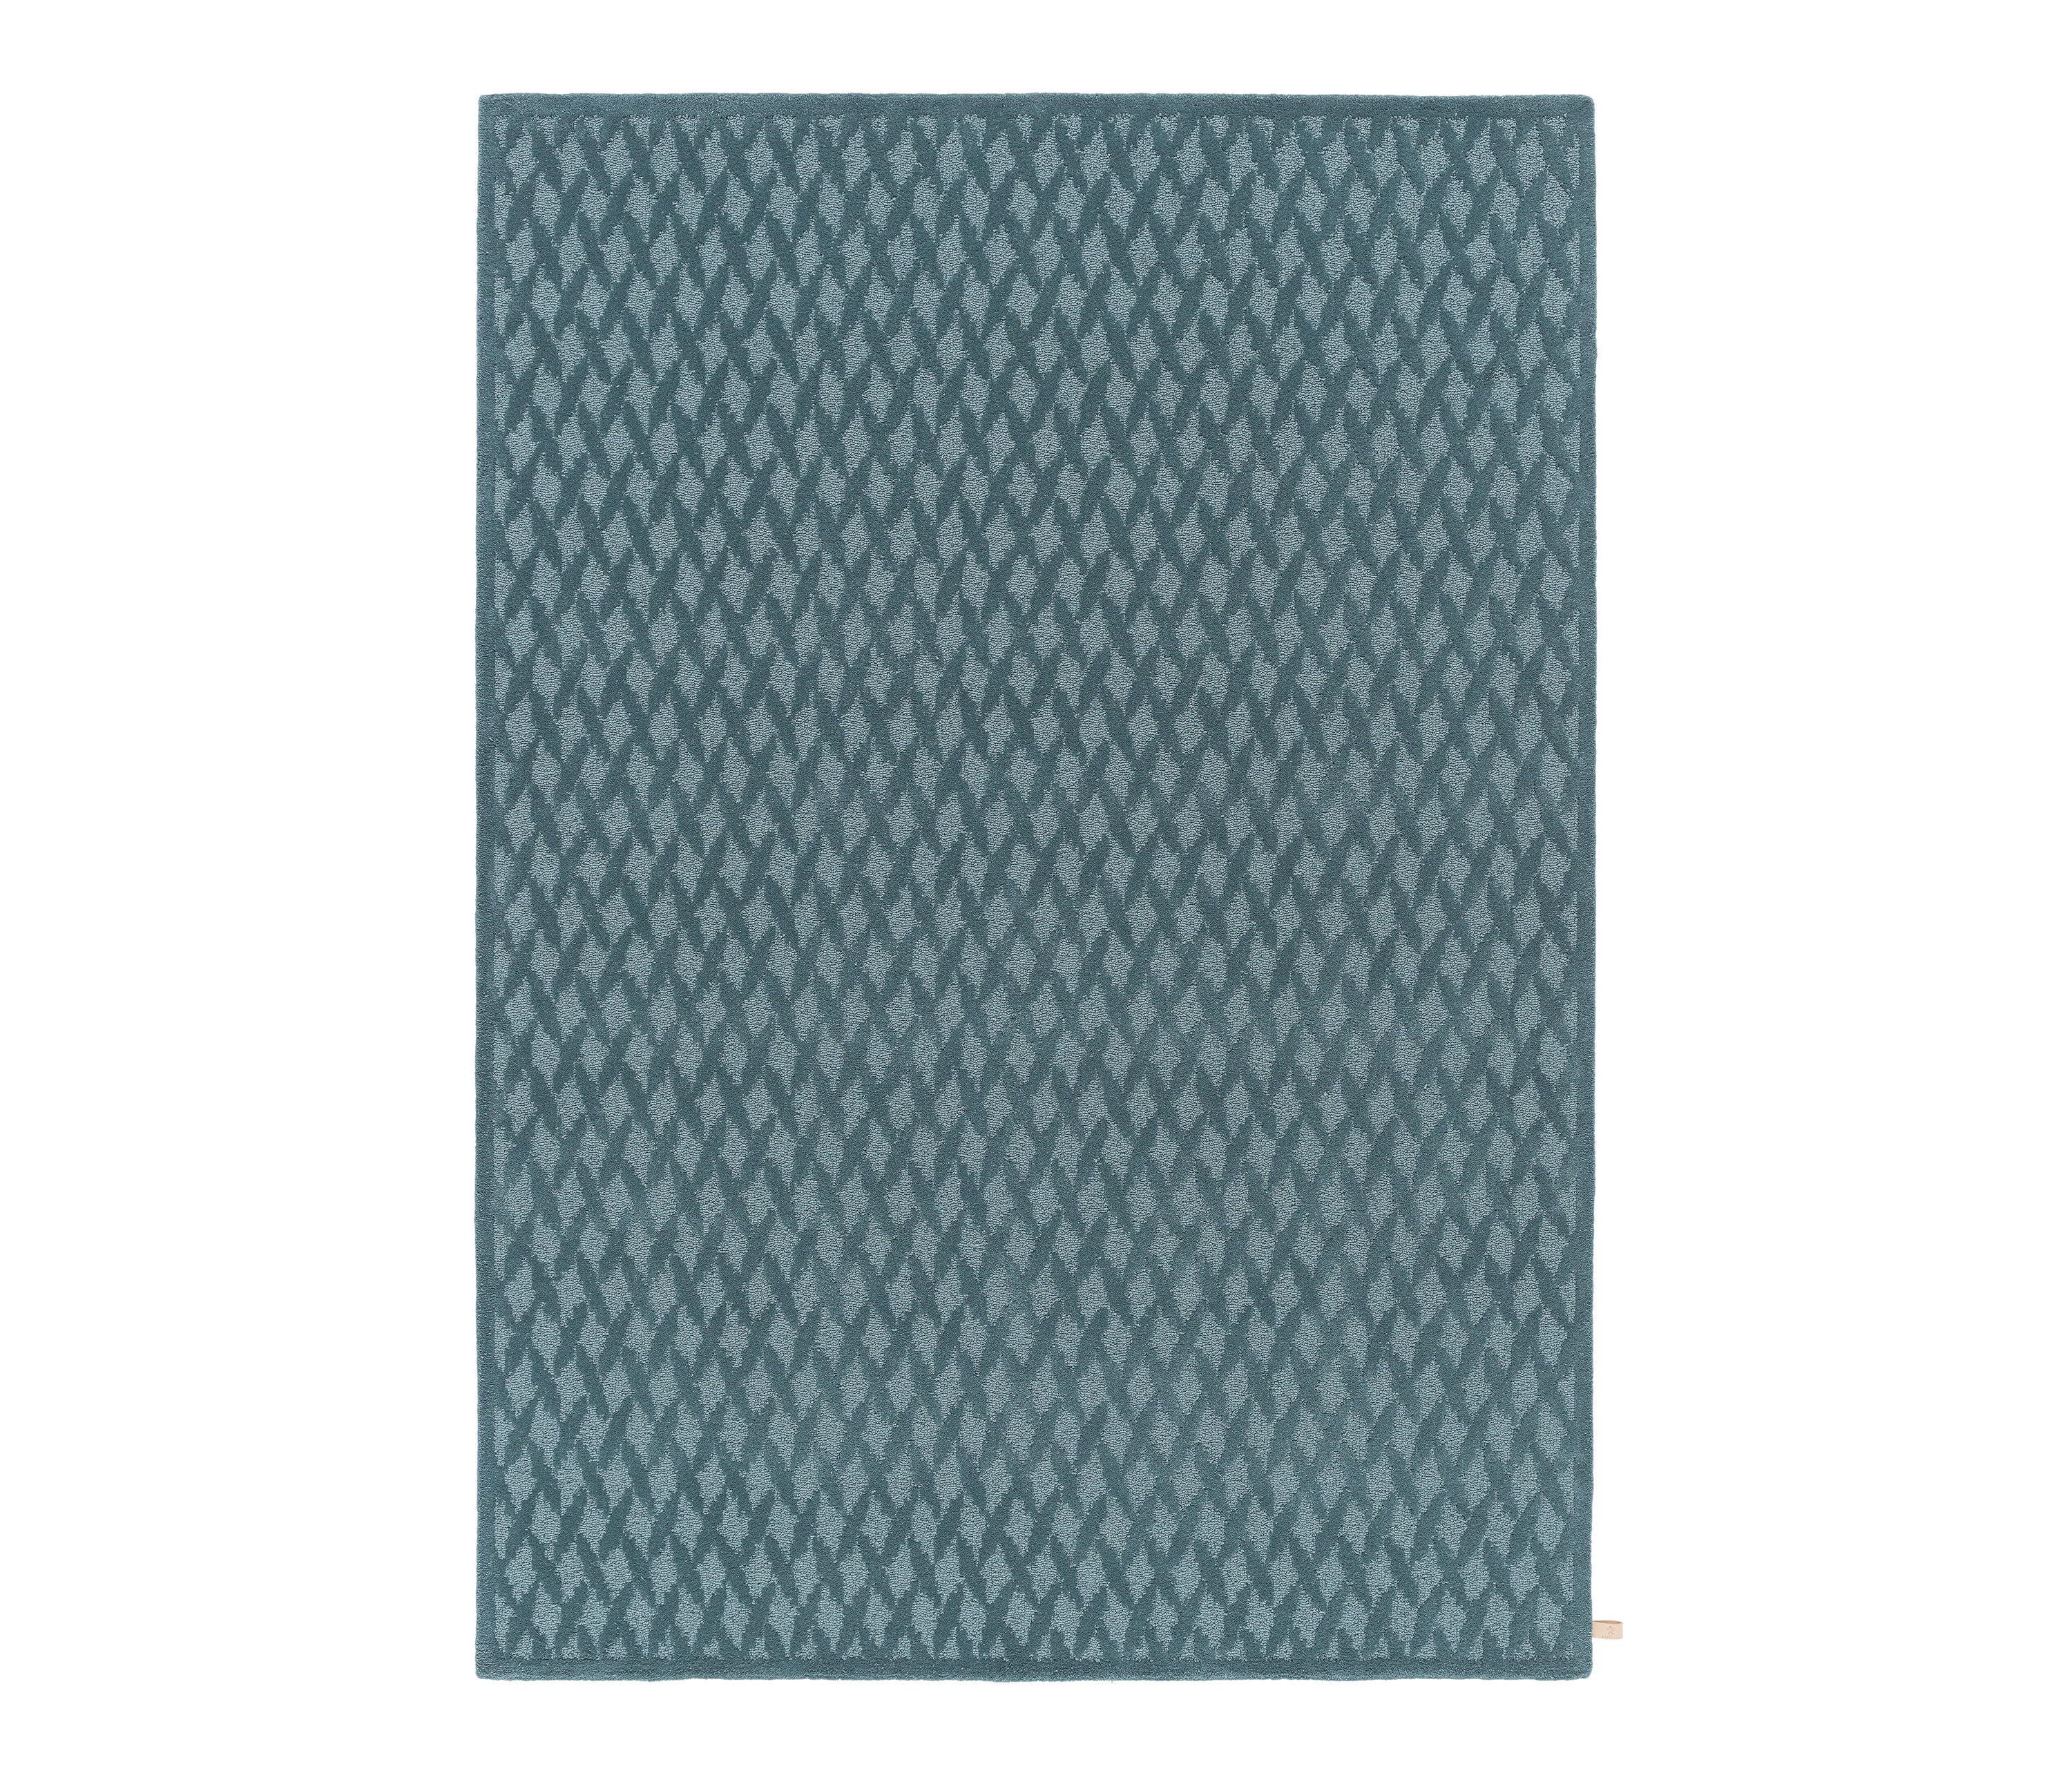 CLASSIC GRID Rugs Designer Rugs From Kasthall Architonic